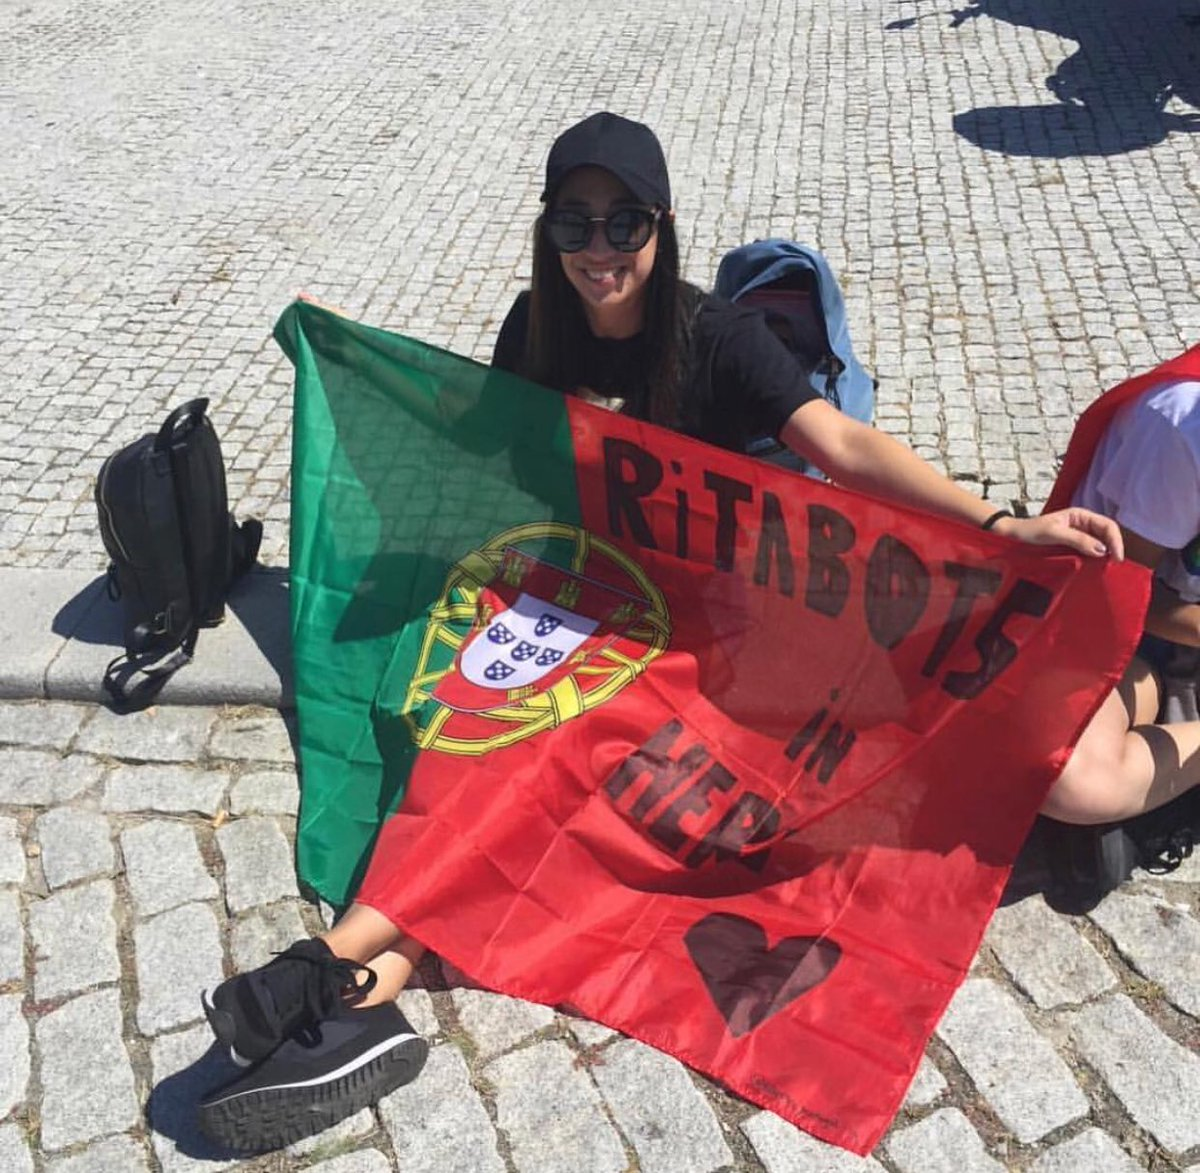 Portugal ❤️❤️❤️ https://t.co/Mkjl6vaXNp